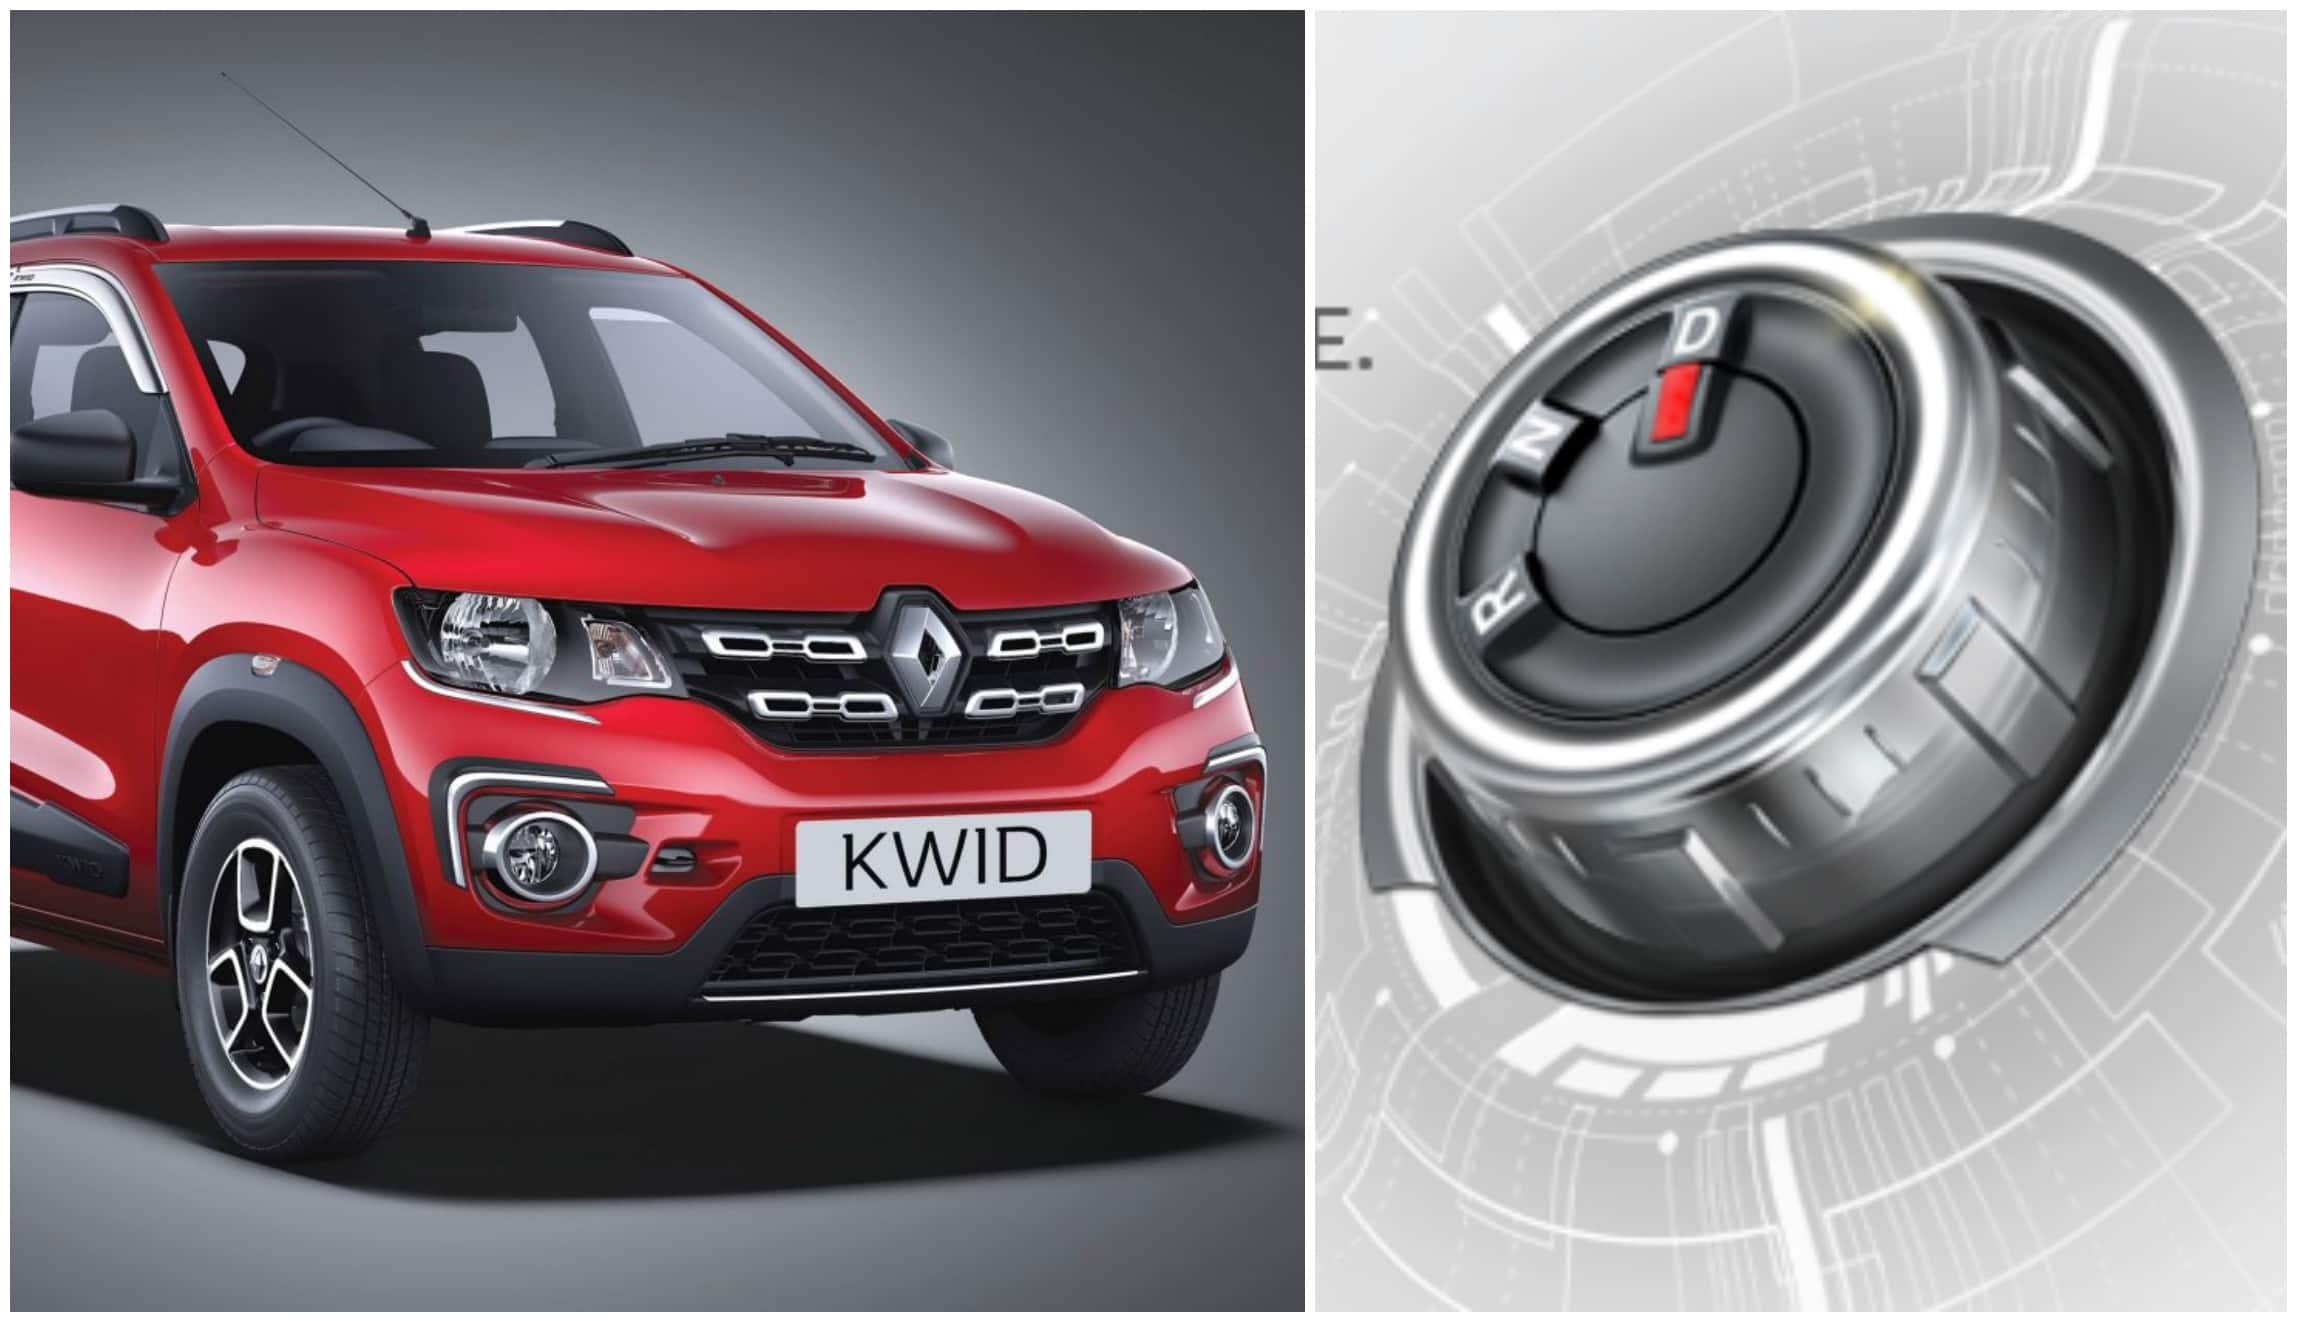 Renault Kwid Amt Teased  To Get A Rotary Gear Knob